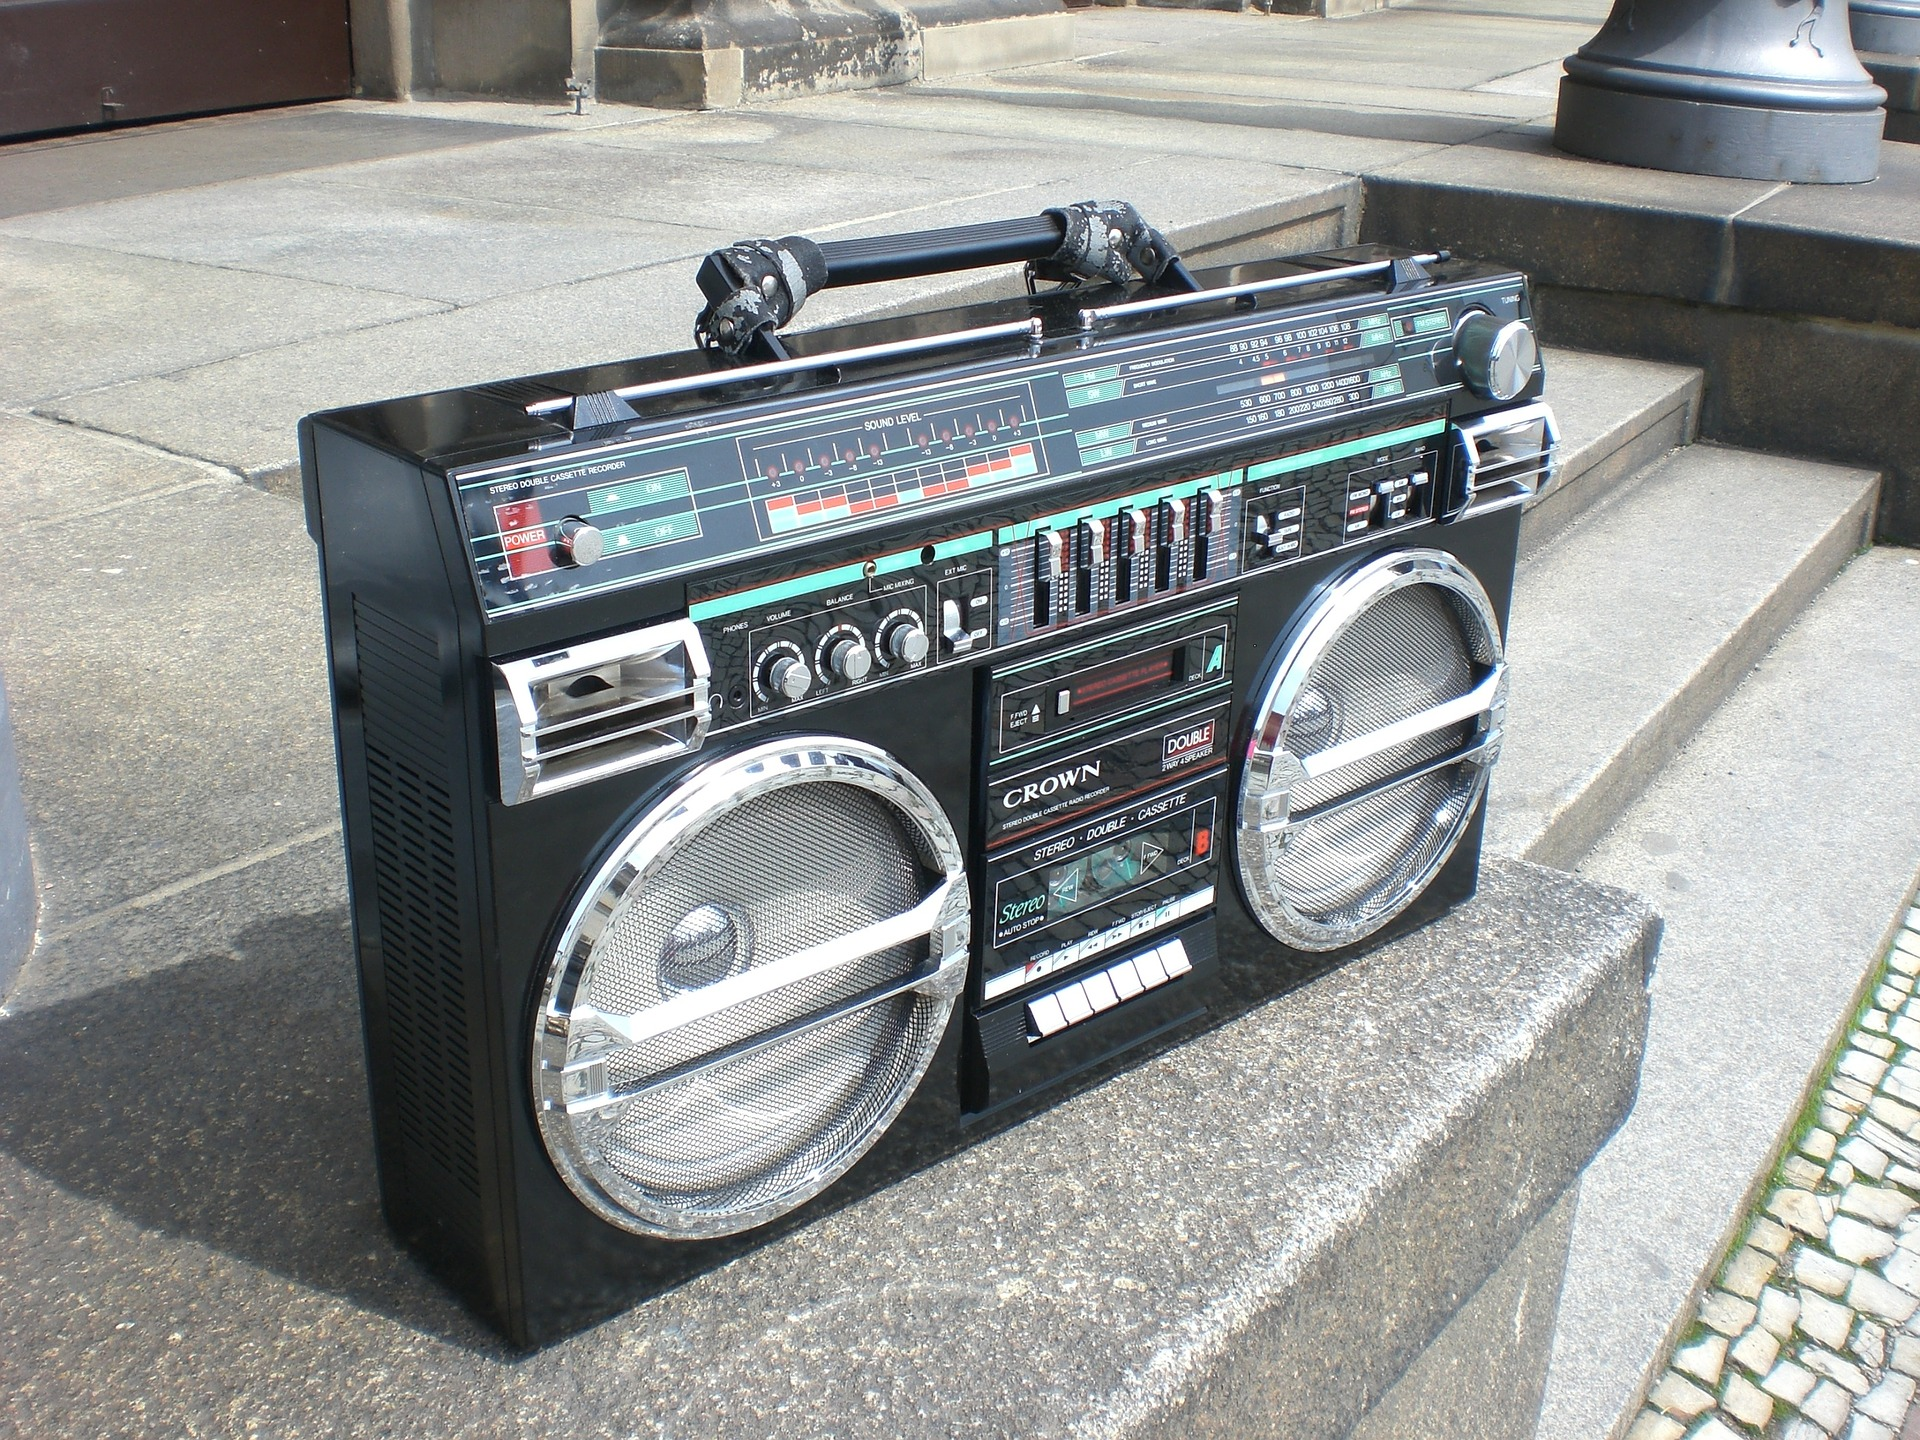 Ghetto-Blaster or Boom-Box